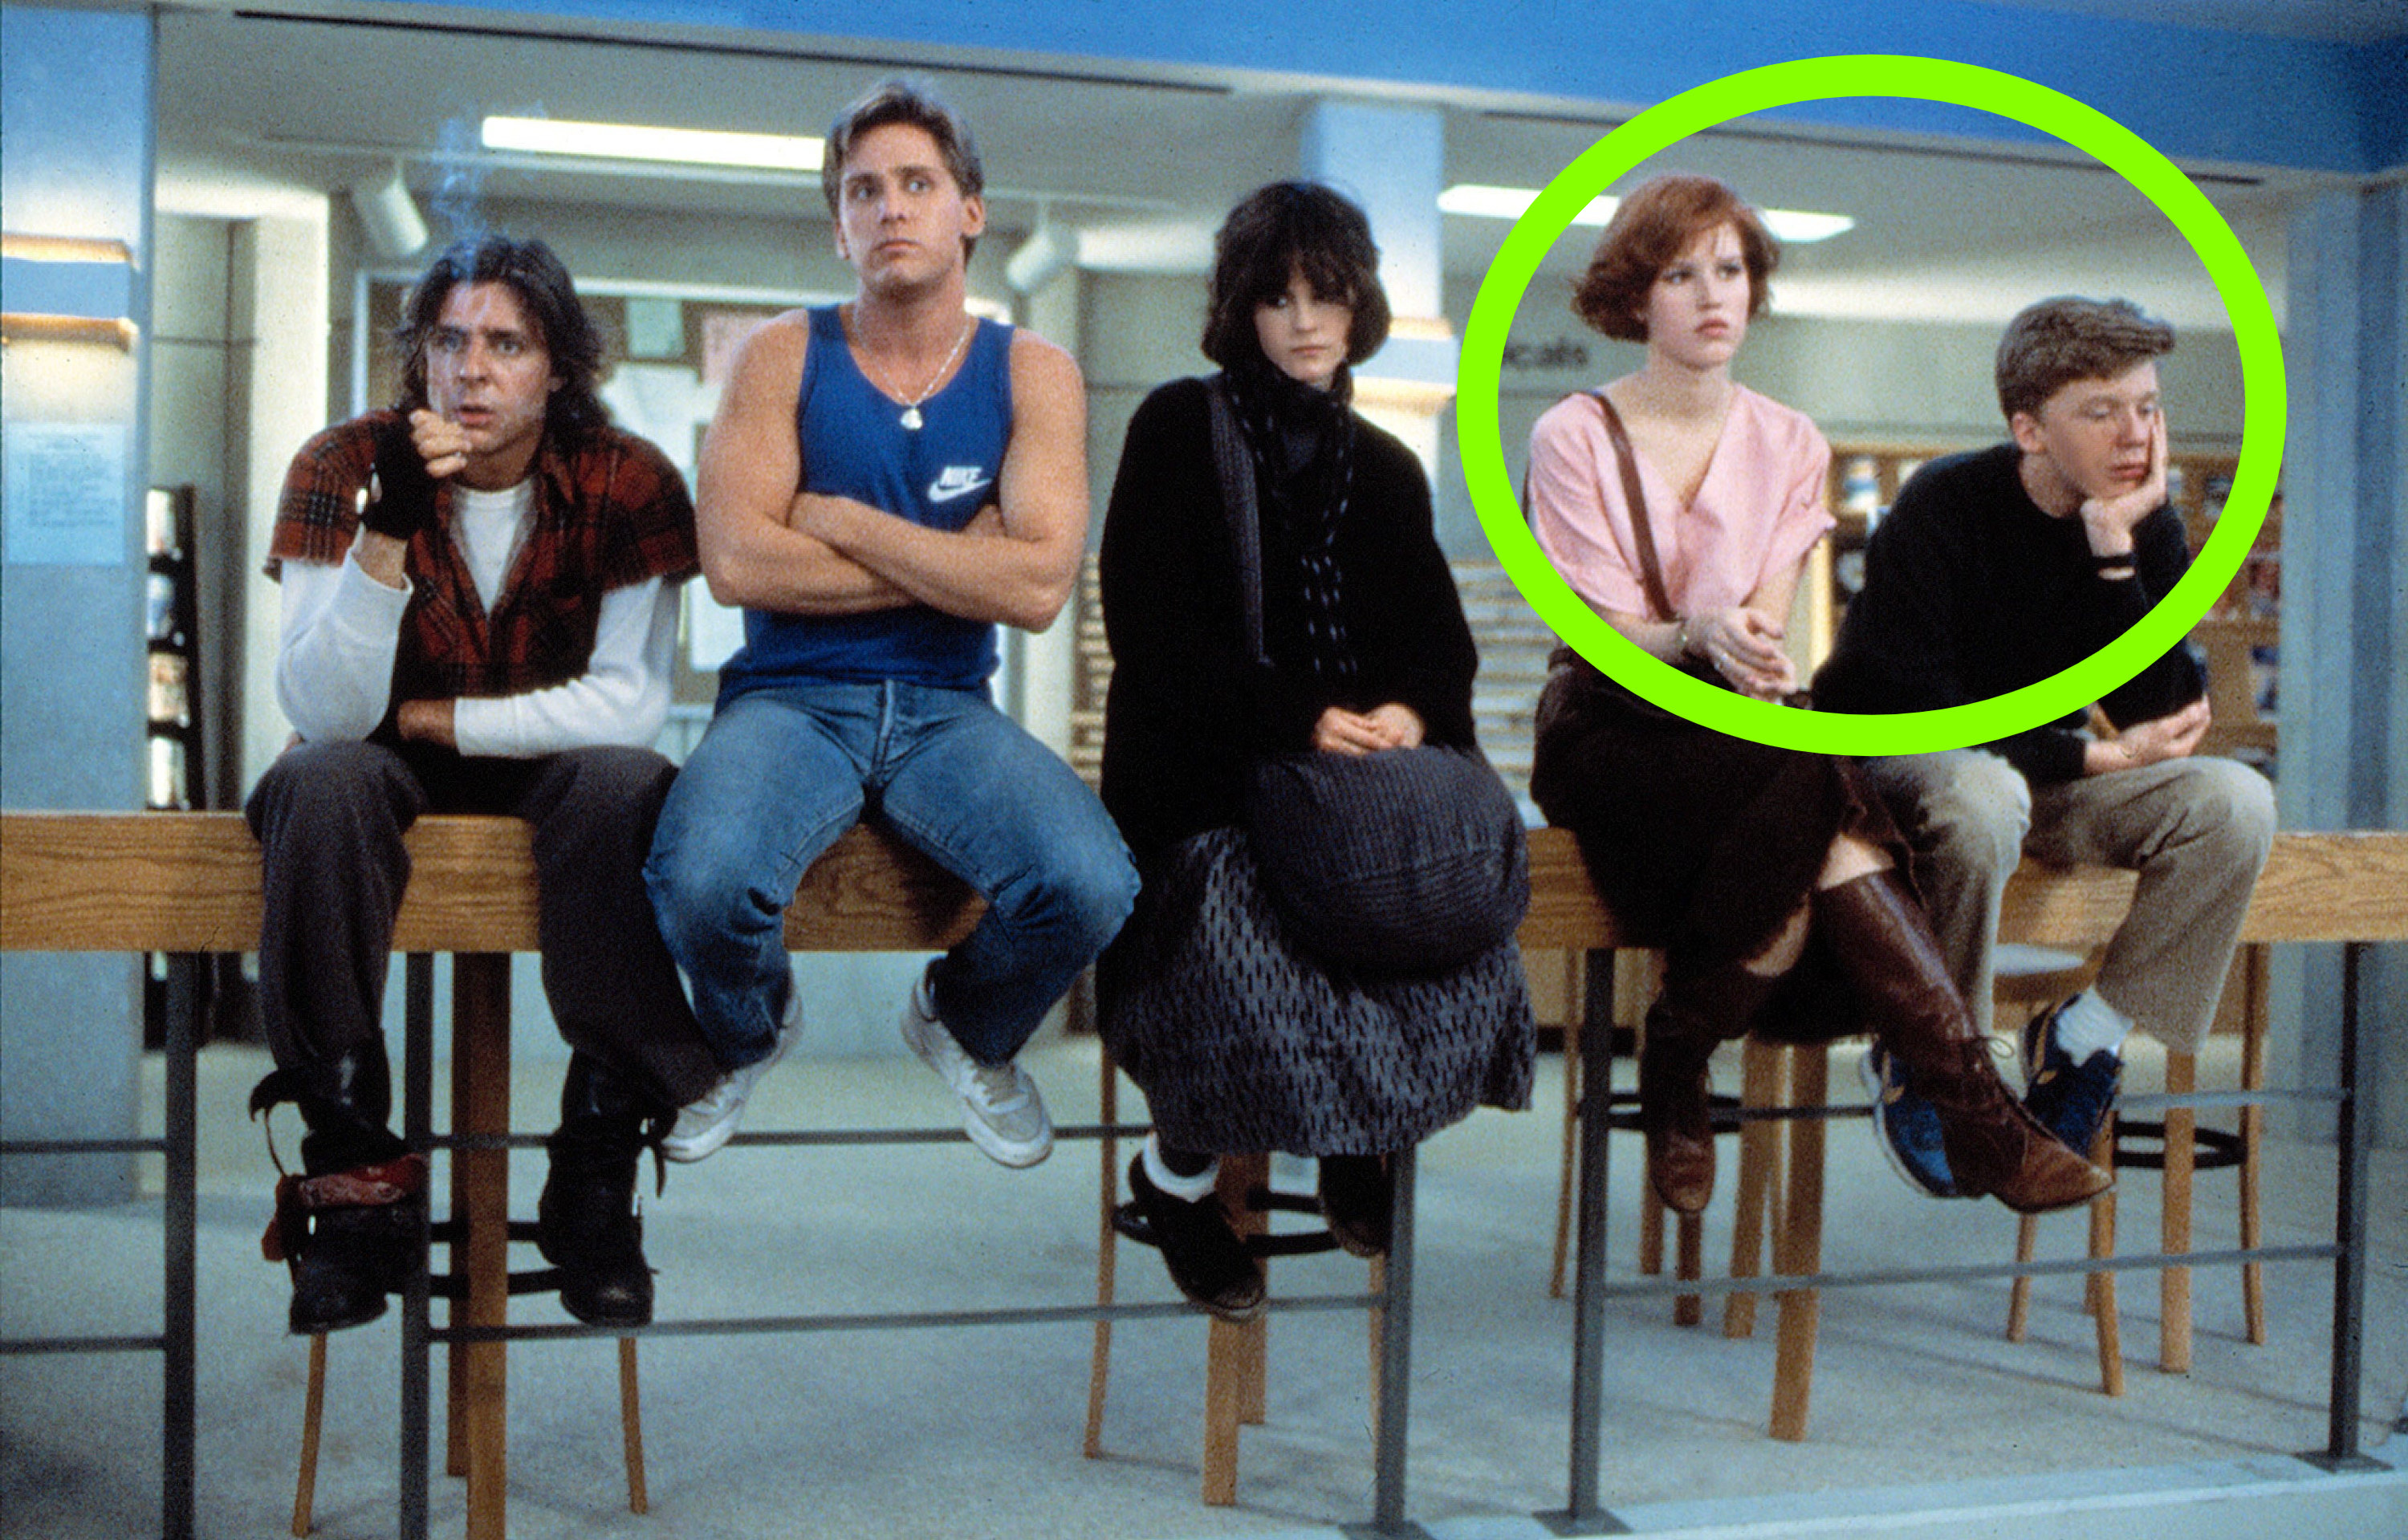 Molly and Anthony circled as everyone sits on the ledge in The Breakfast Club